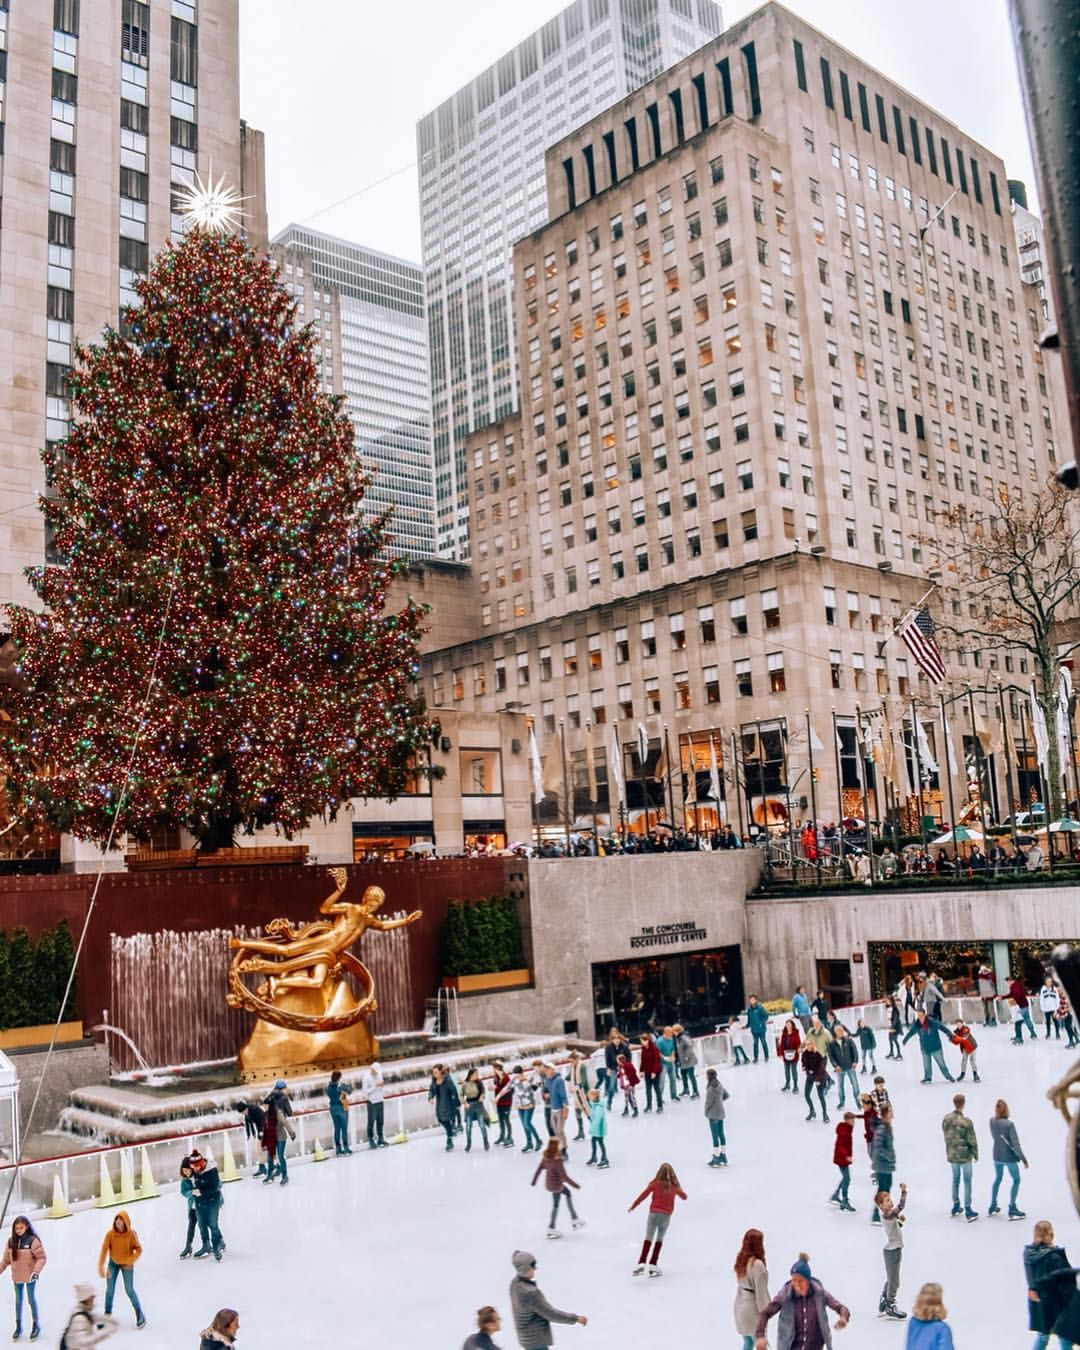 My Christmas Dream 2019.A Christmas Dream Nyc My Home In 2019 New York City